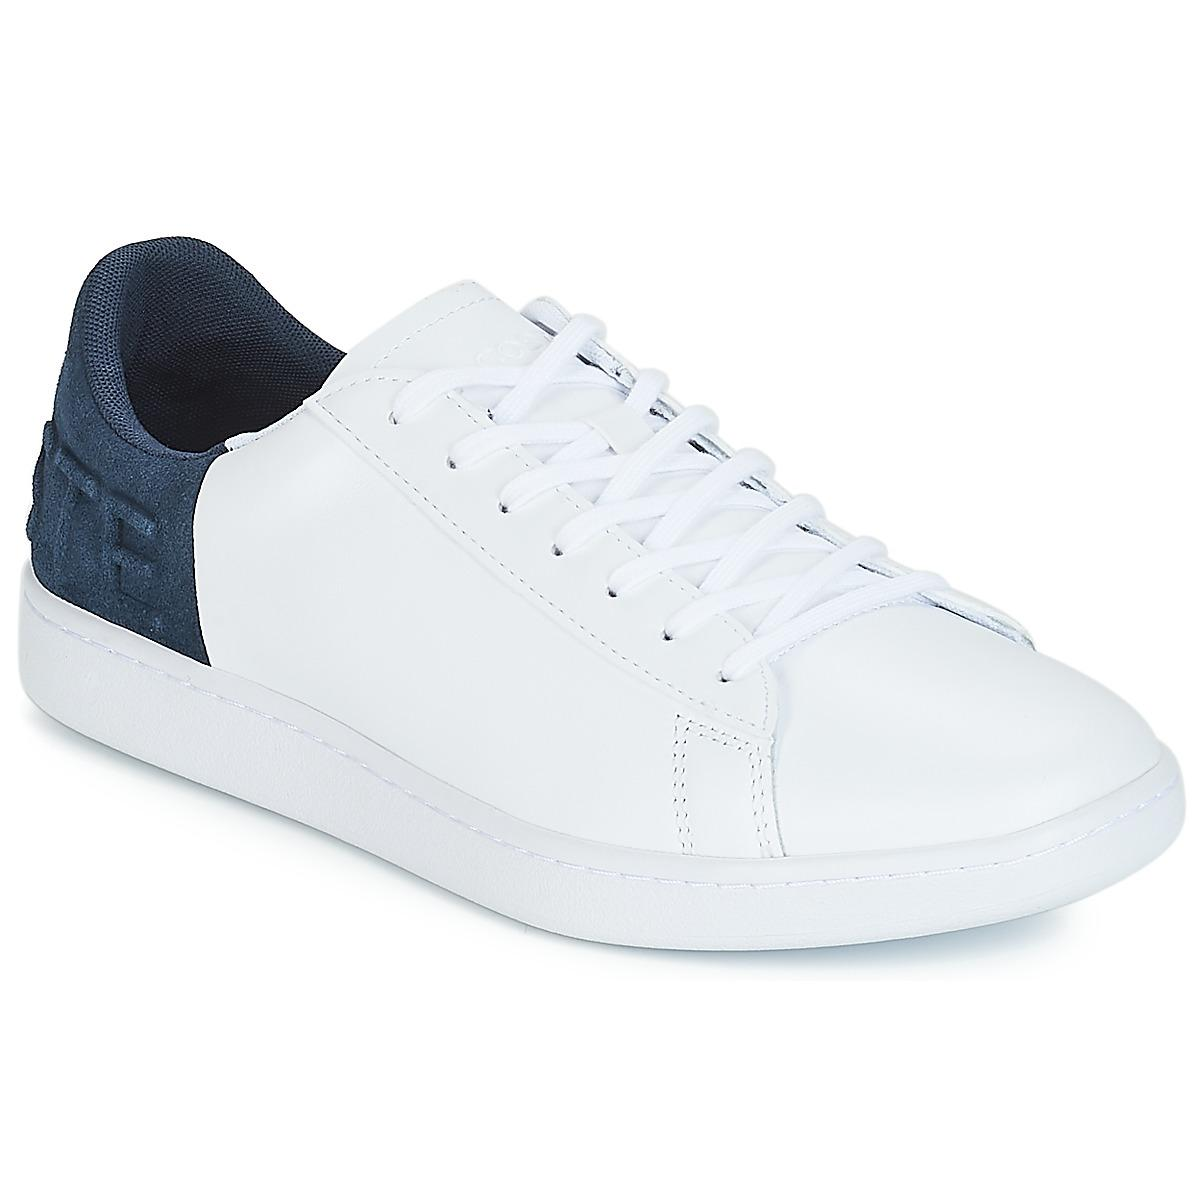 bebf16ed1222a Lacoste - White Carnaby Evo 318 6 Shoes (trainers) for Men - Lyst. View  fullscreen